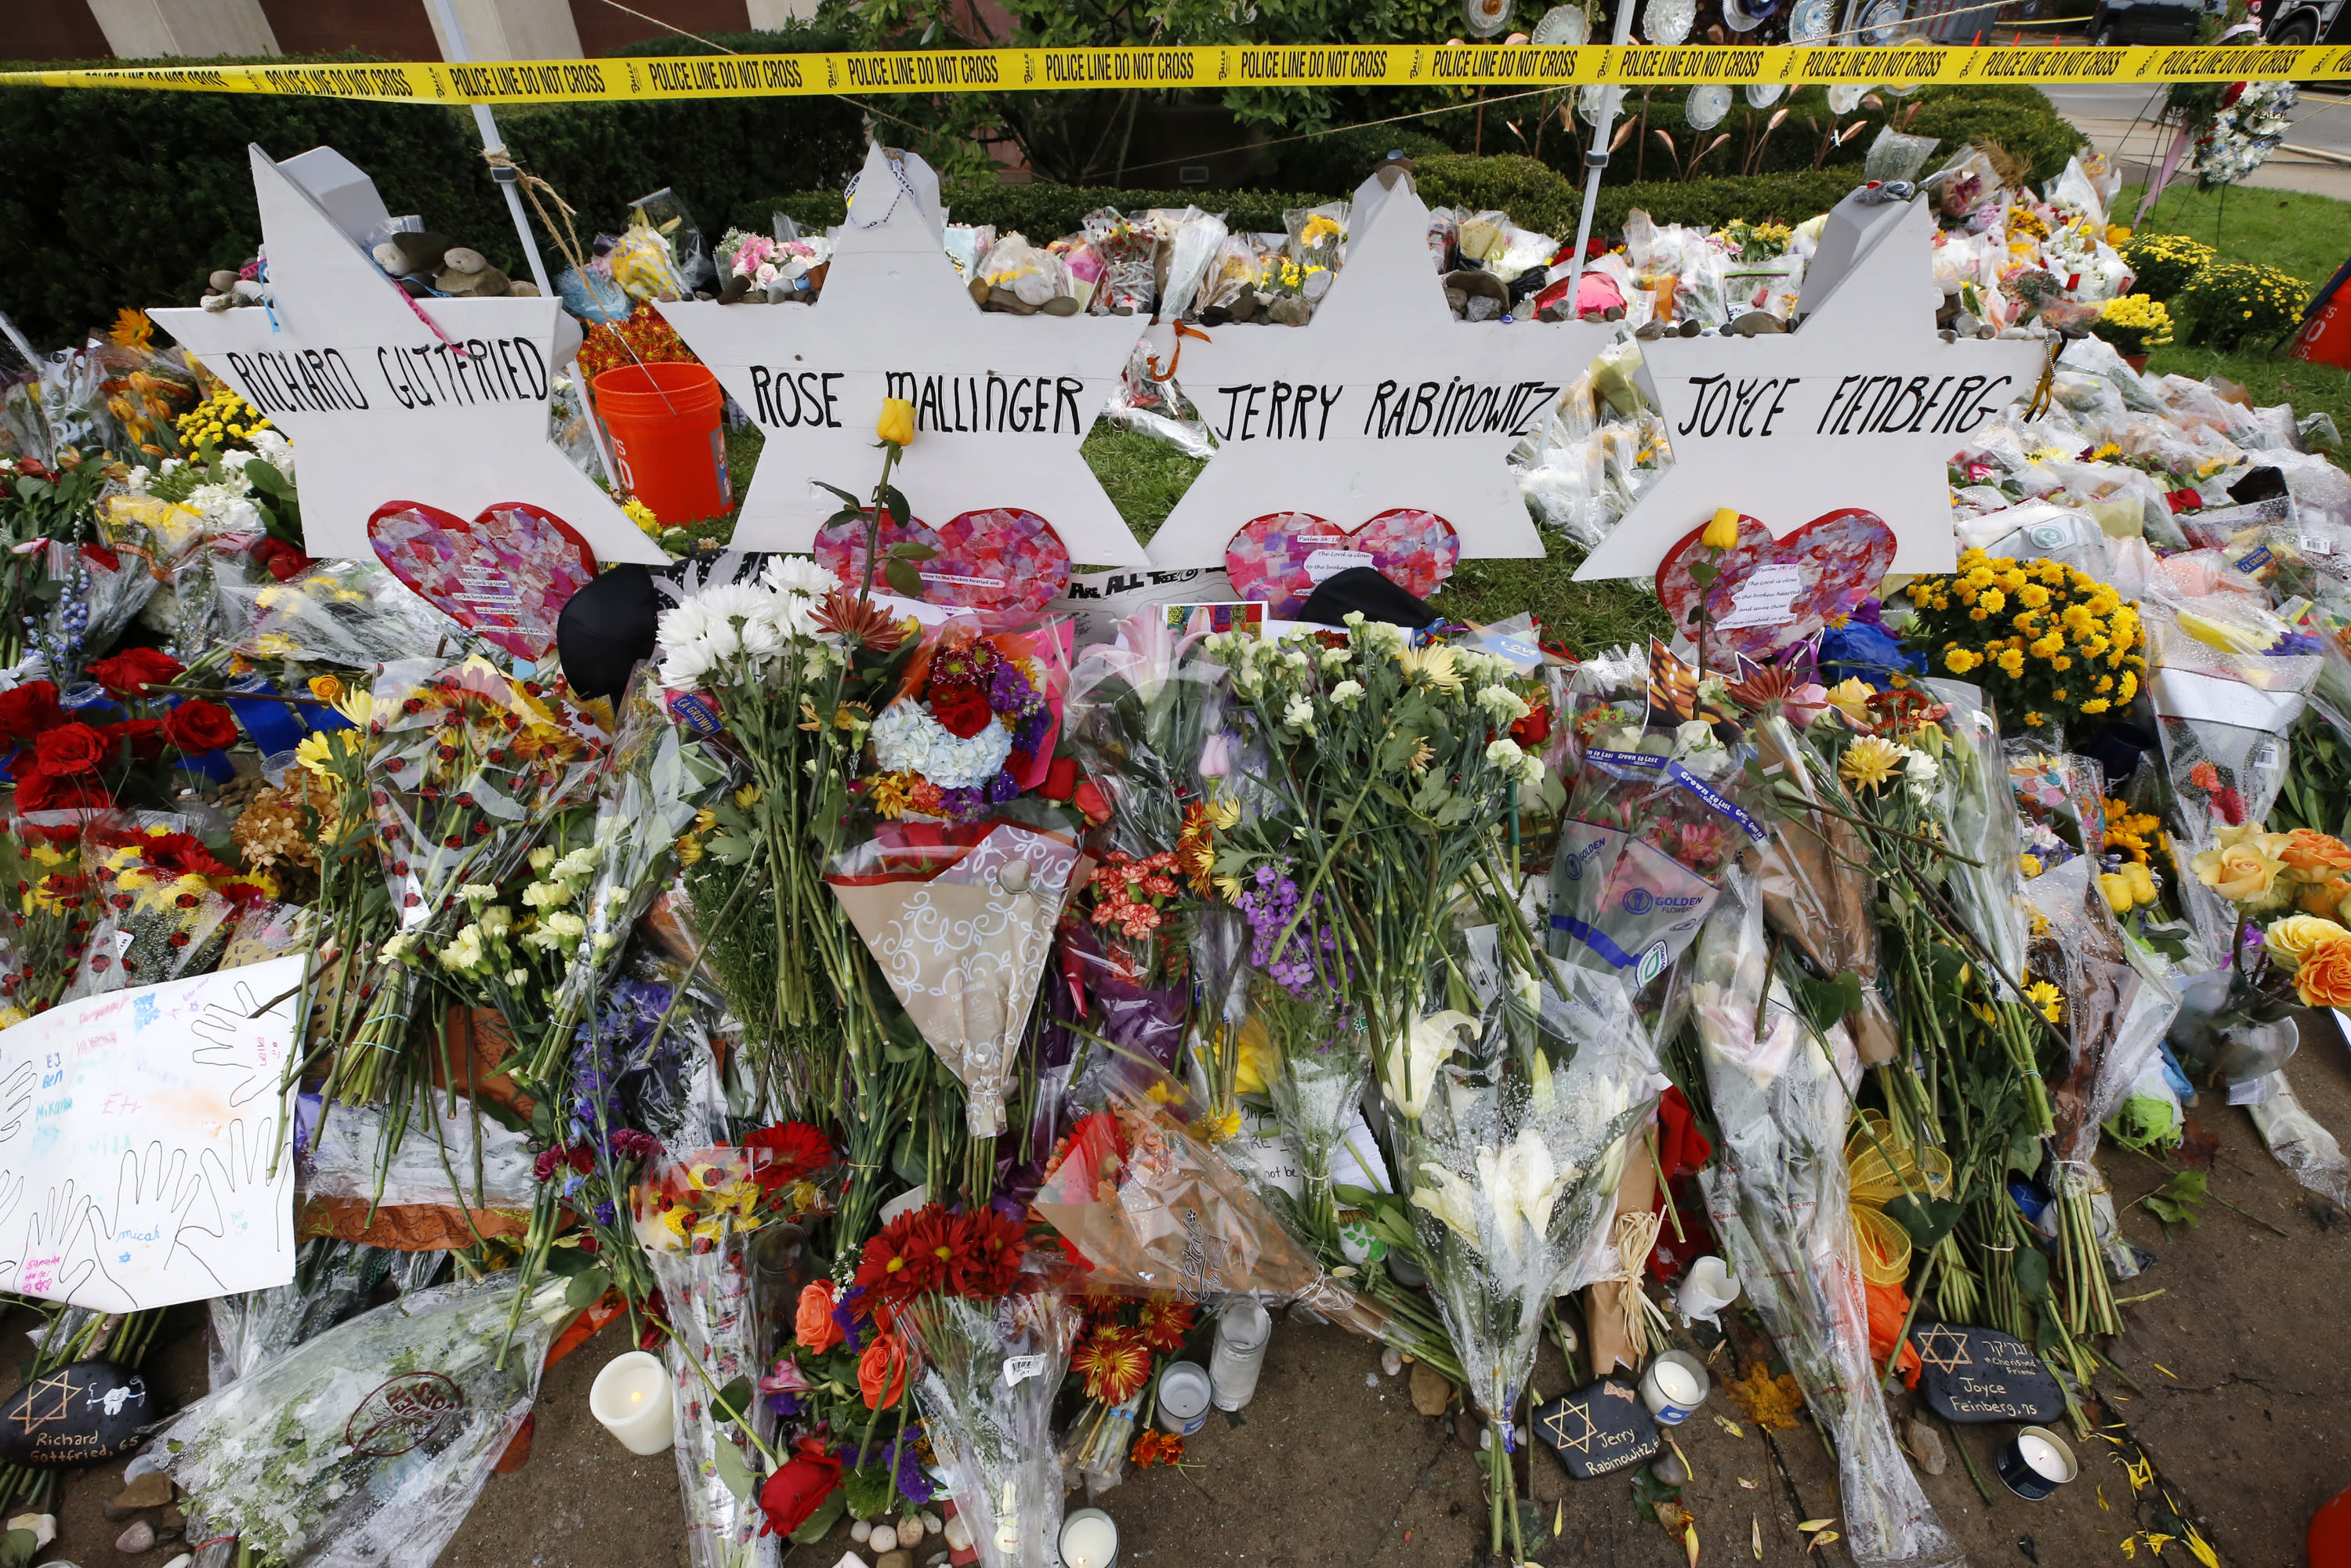 Flowers are pile around Stars of David Thursday, Nov. 1, 2018, at a makeshift memorial outside the Tree of Life Synagogue to the 11 people killed Oct 27, 2018 while worshipping in the Squirrel Hill neighborhood of Pittsburgh. (AP Photo/Gene J. Puskar)